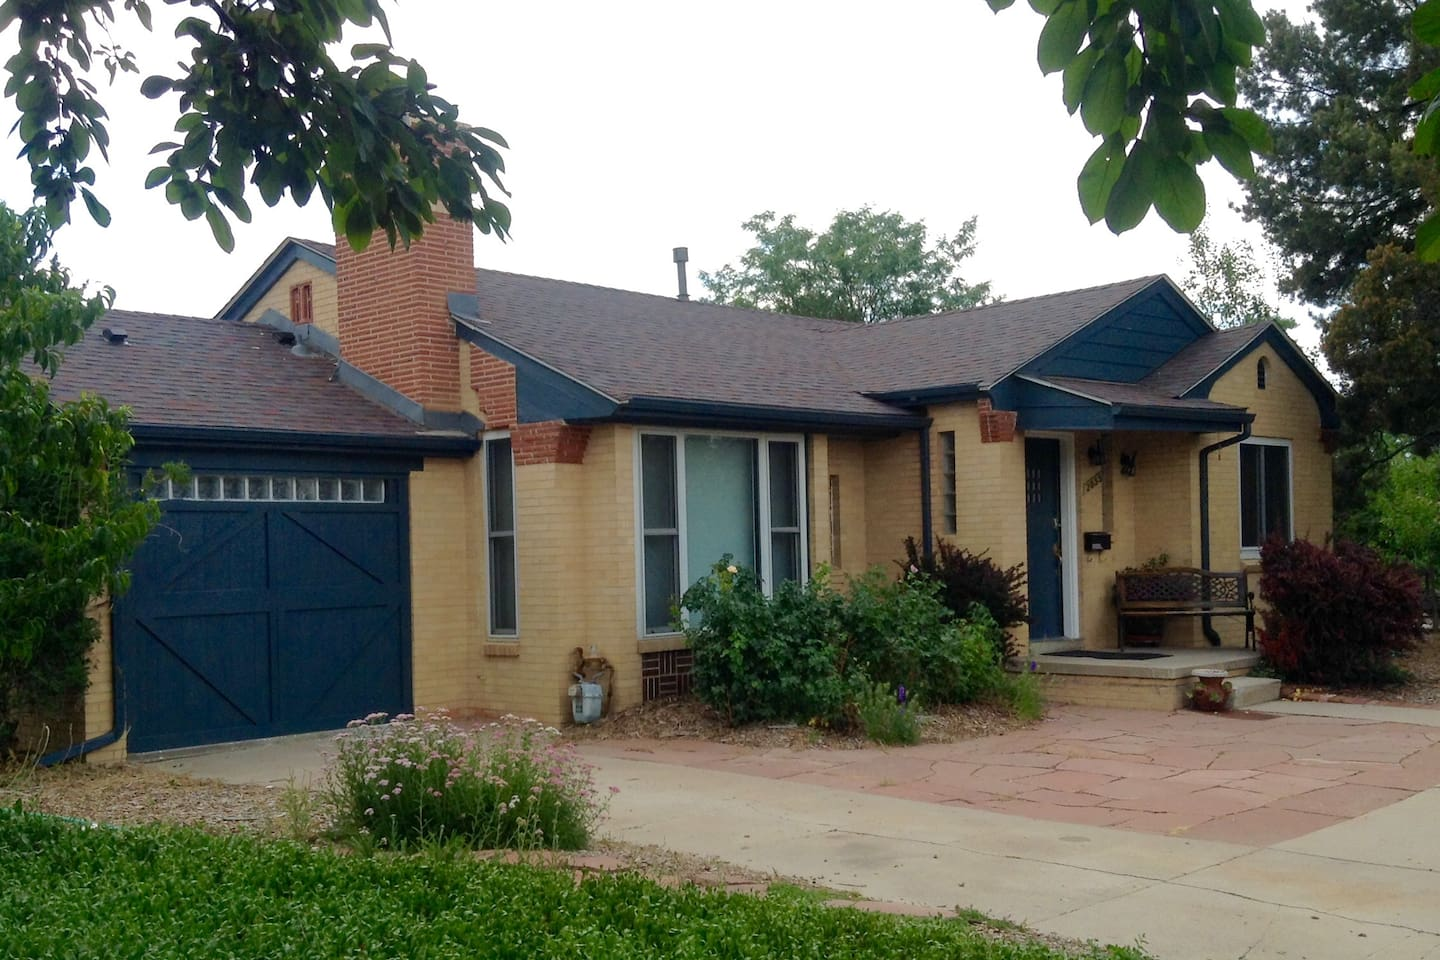 The house is set back from the street and completely surrounded by gardens on four city lots.